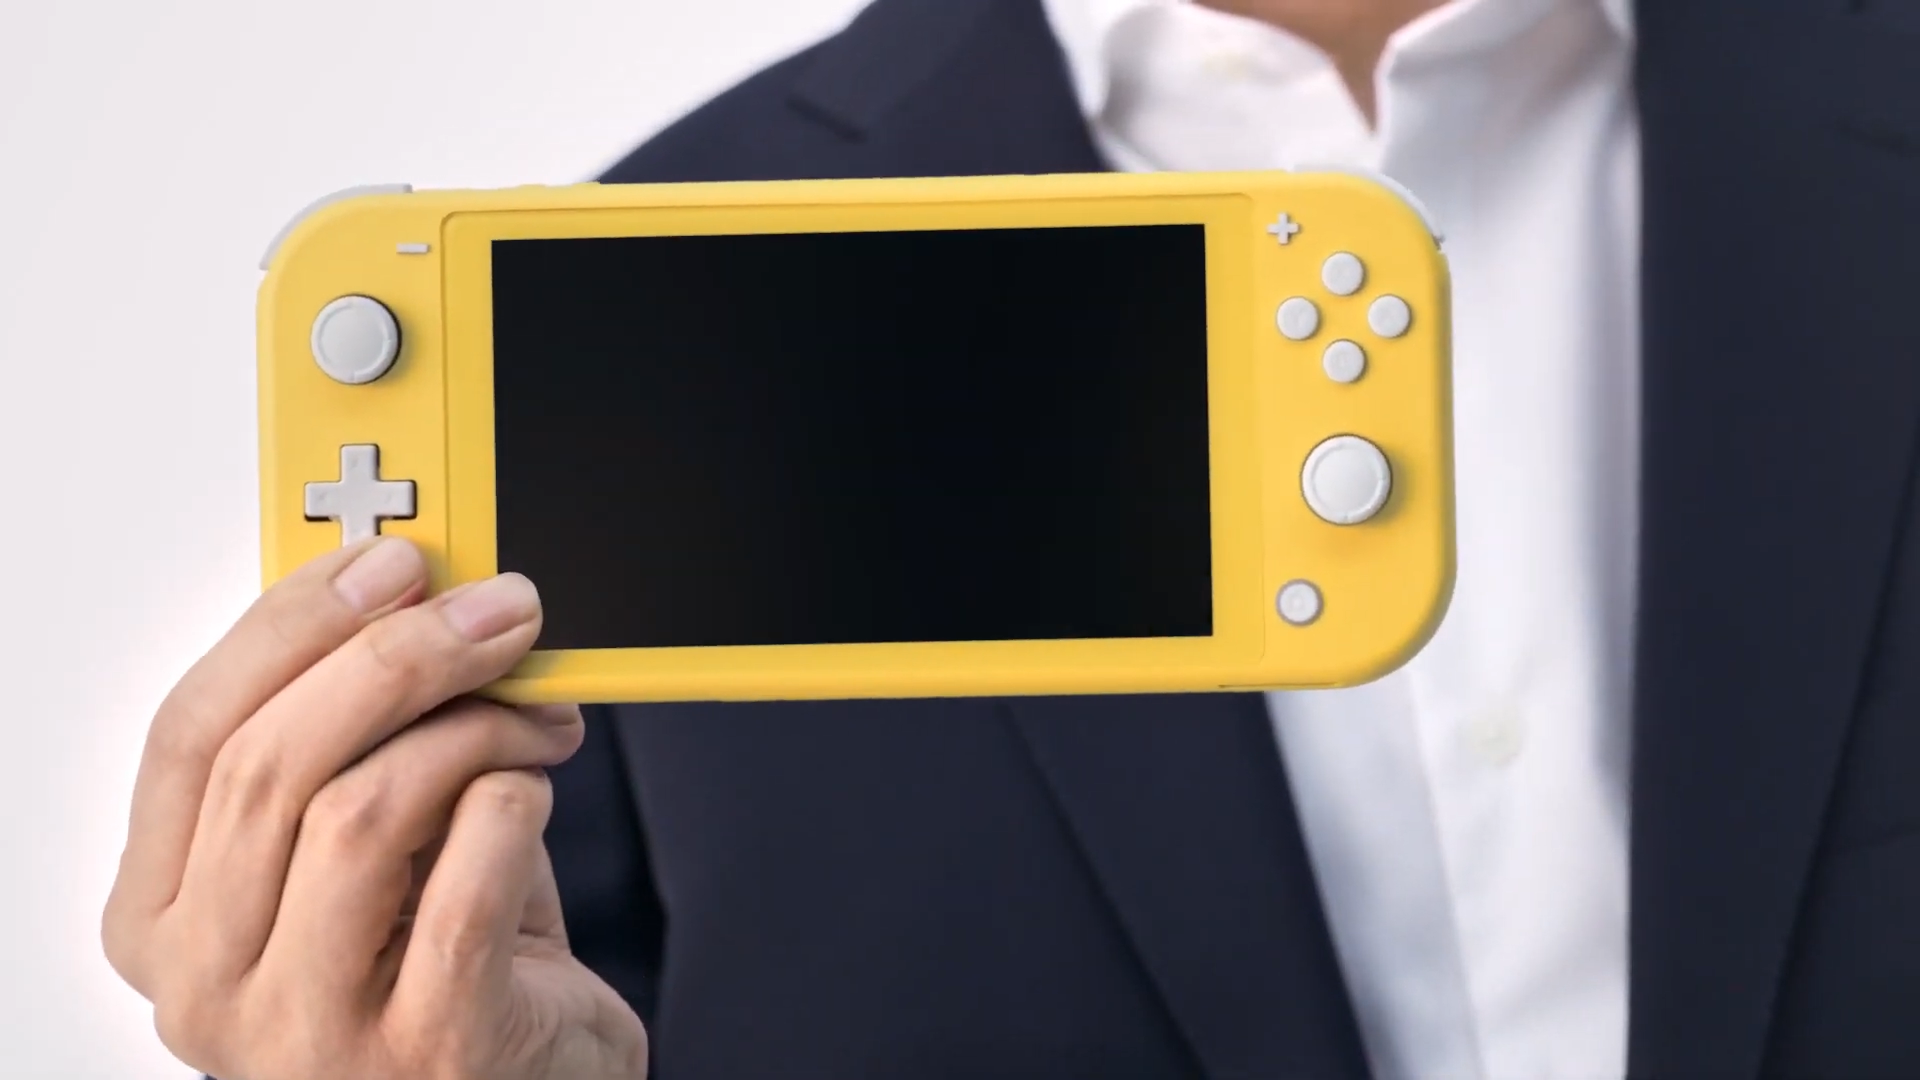 Video: Nintendo Switch Lite first impressions